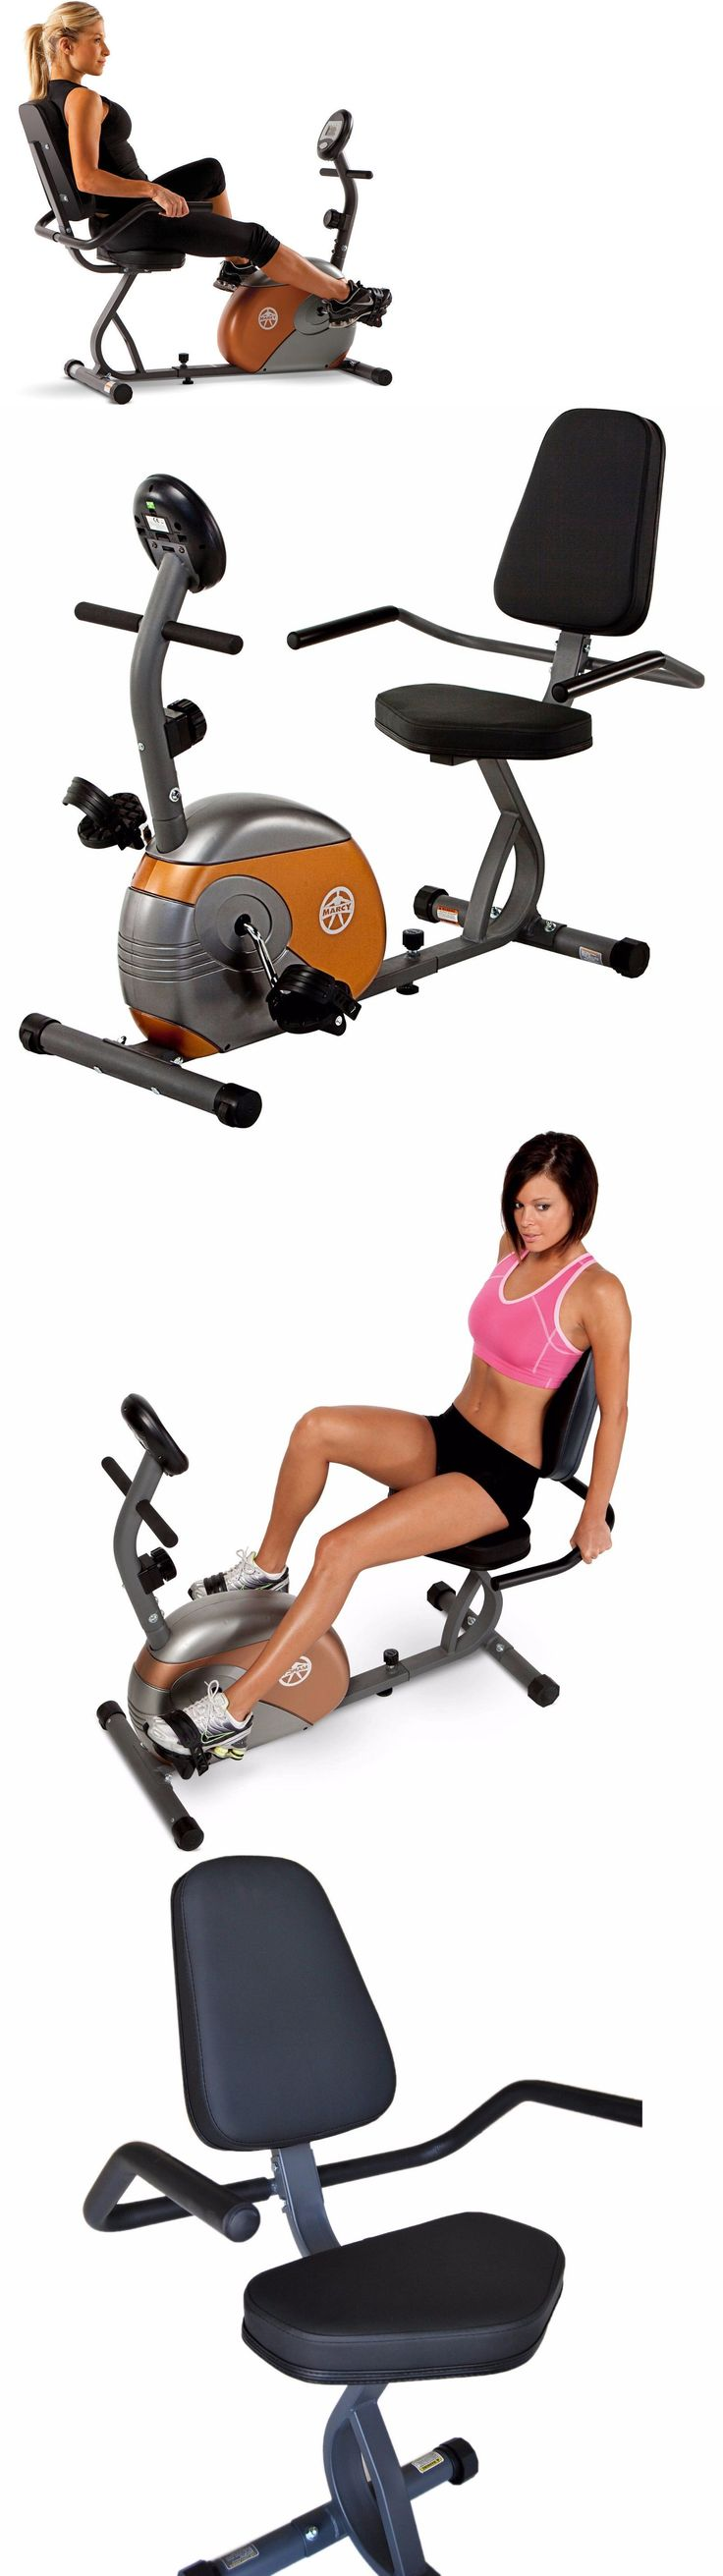 Exercise Bikes 58102: Recumbent Exercise Bike Fitness Stationary Cardio Bicycle Workout Cycling Indoor -> BUY IT NOW ONLY: $124.5 on eBay!